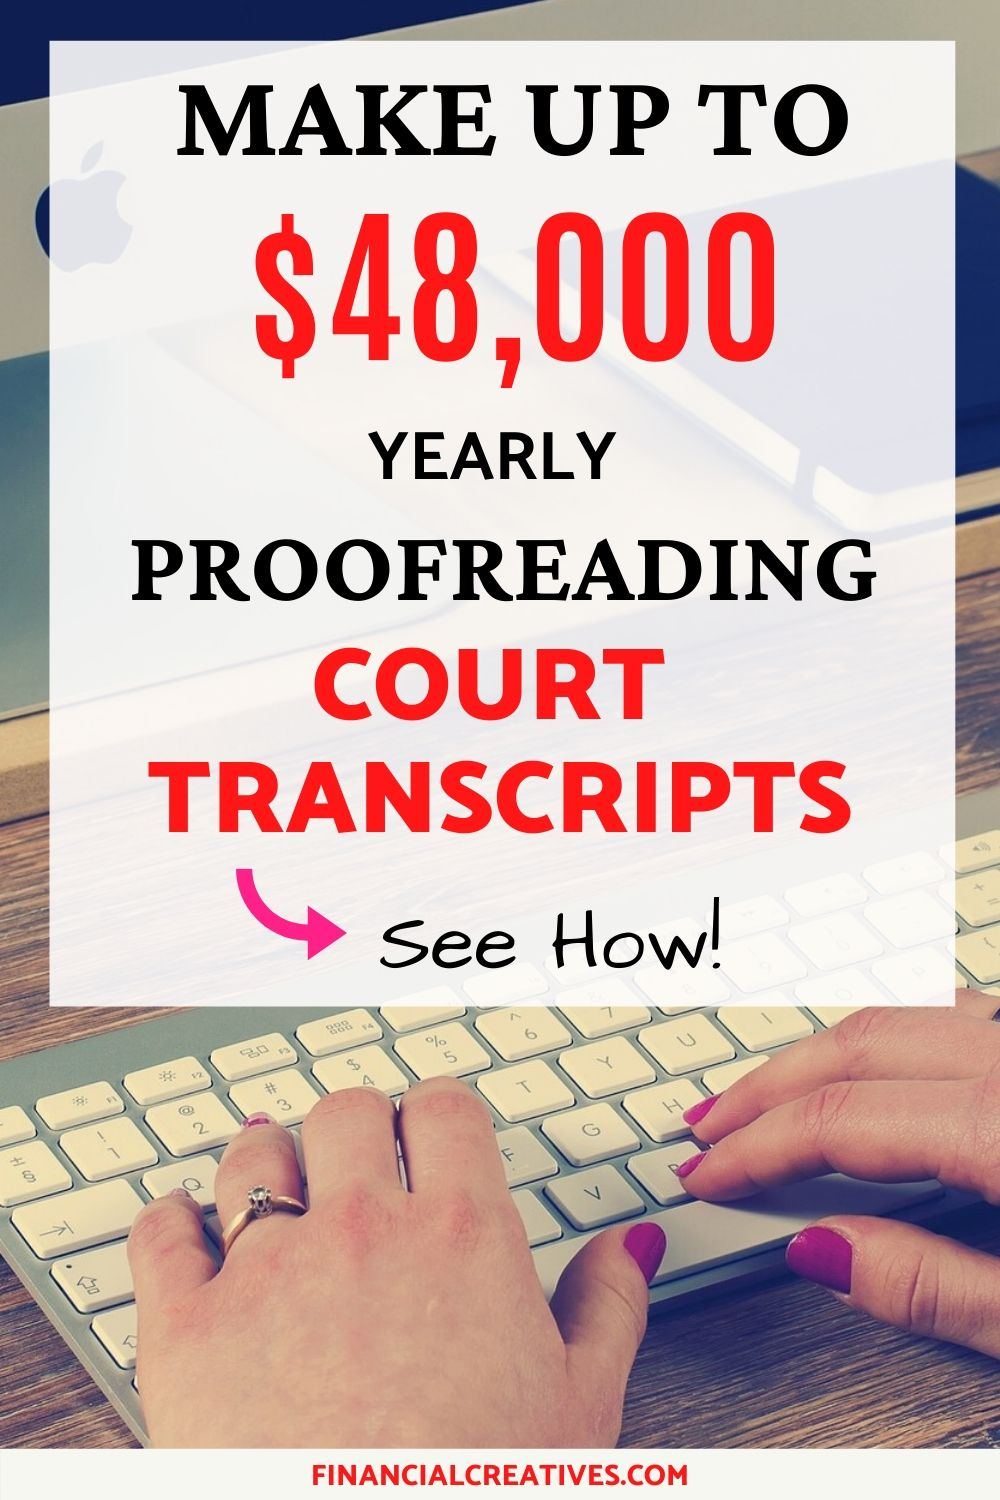 Become a Court Transcript Proofreader from Home